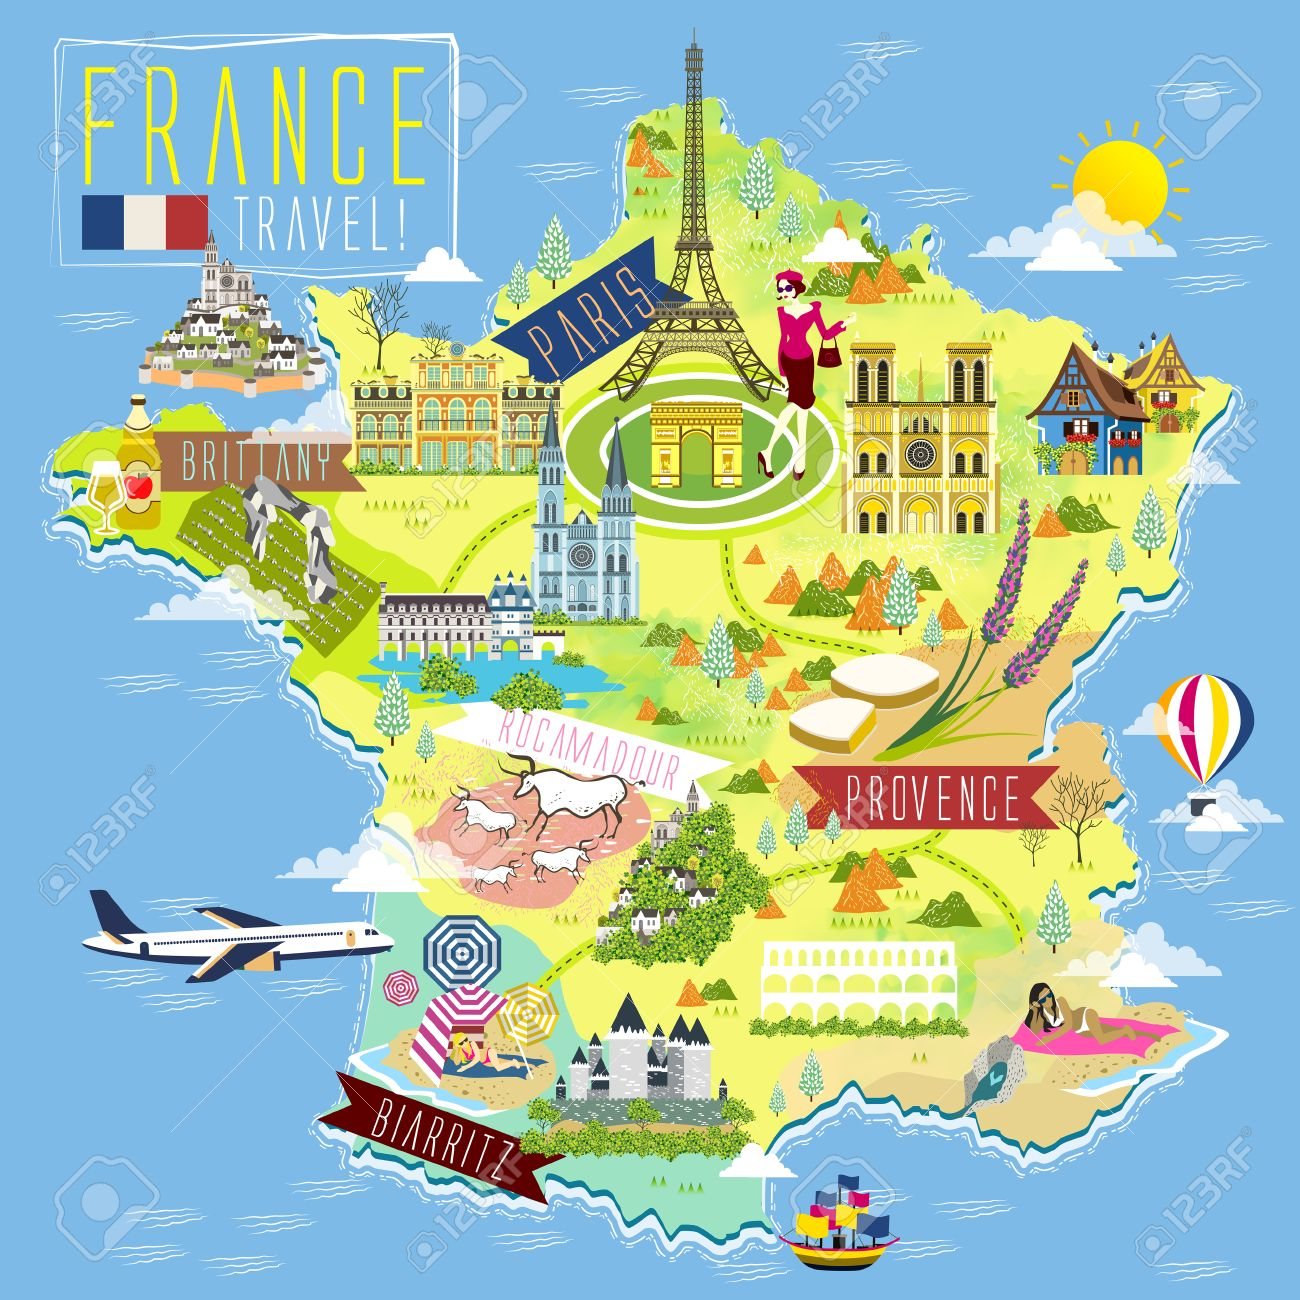 Travel Map Of France.Lovely France Travel Map With Attraction Symbols Royalty Free